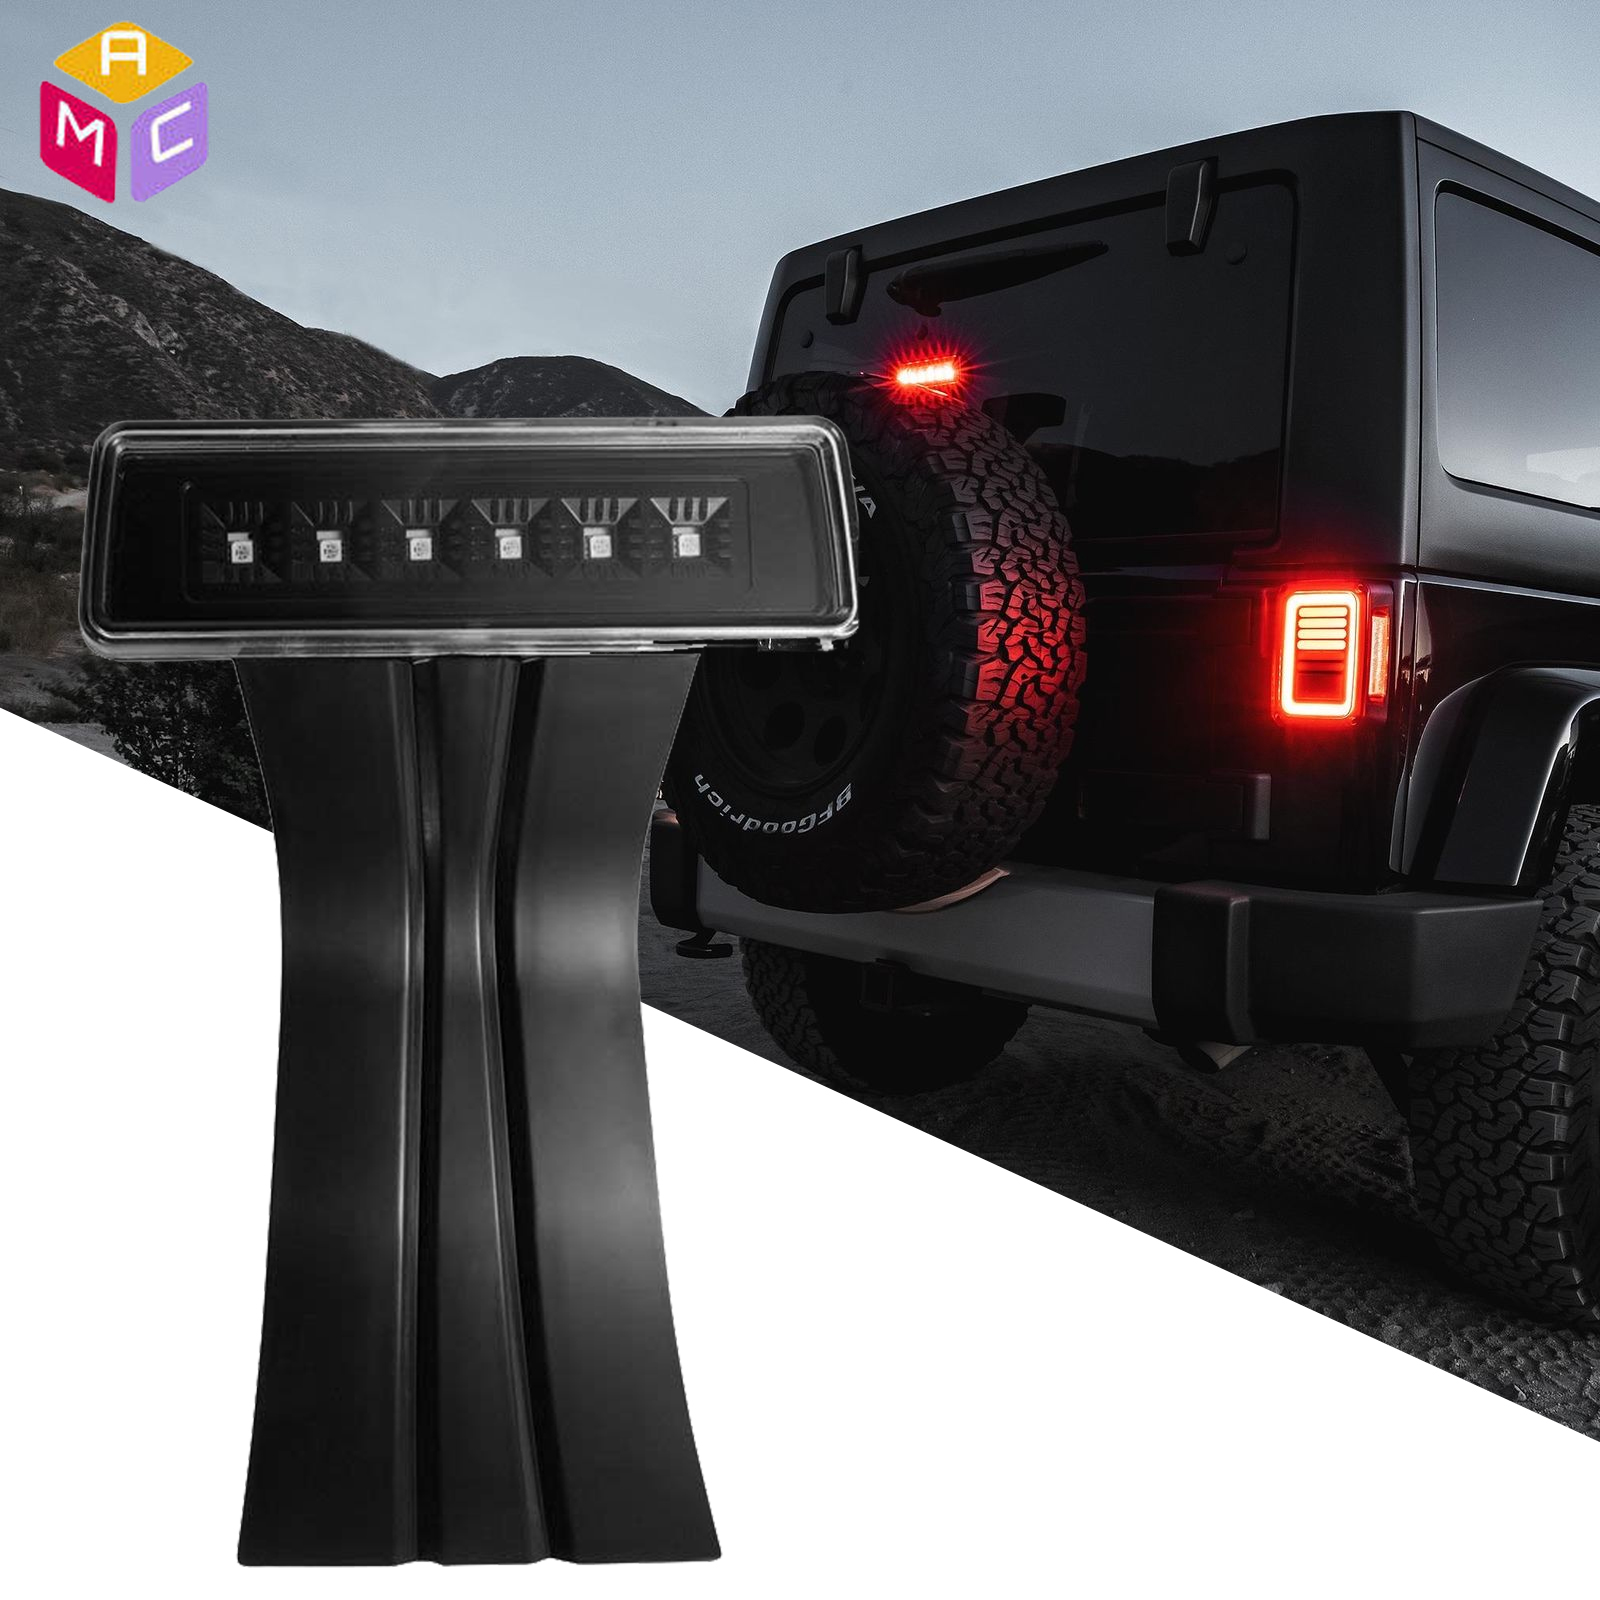 Details about For 07-17 Jeep Wrangler JK Rear Tail Mount LED 3rd  Brake/Third Stop Light Smoke